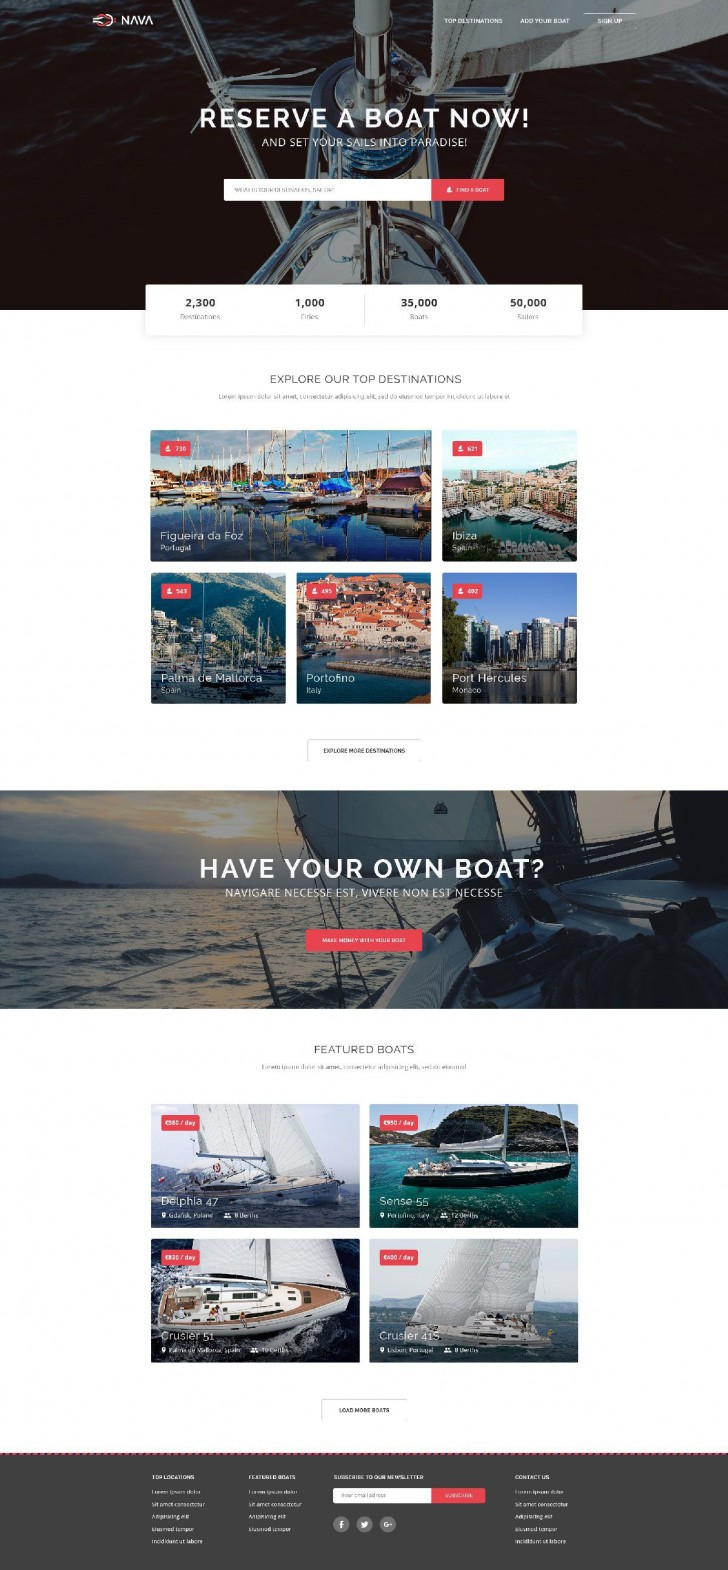 006 Remarkable One Page Website Template Psd Free Download Idea 728